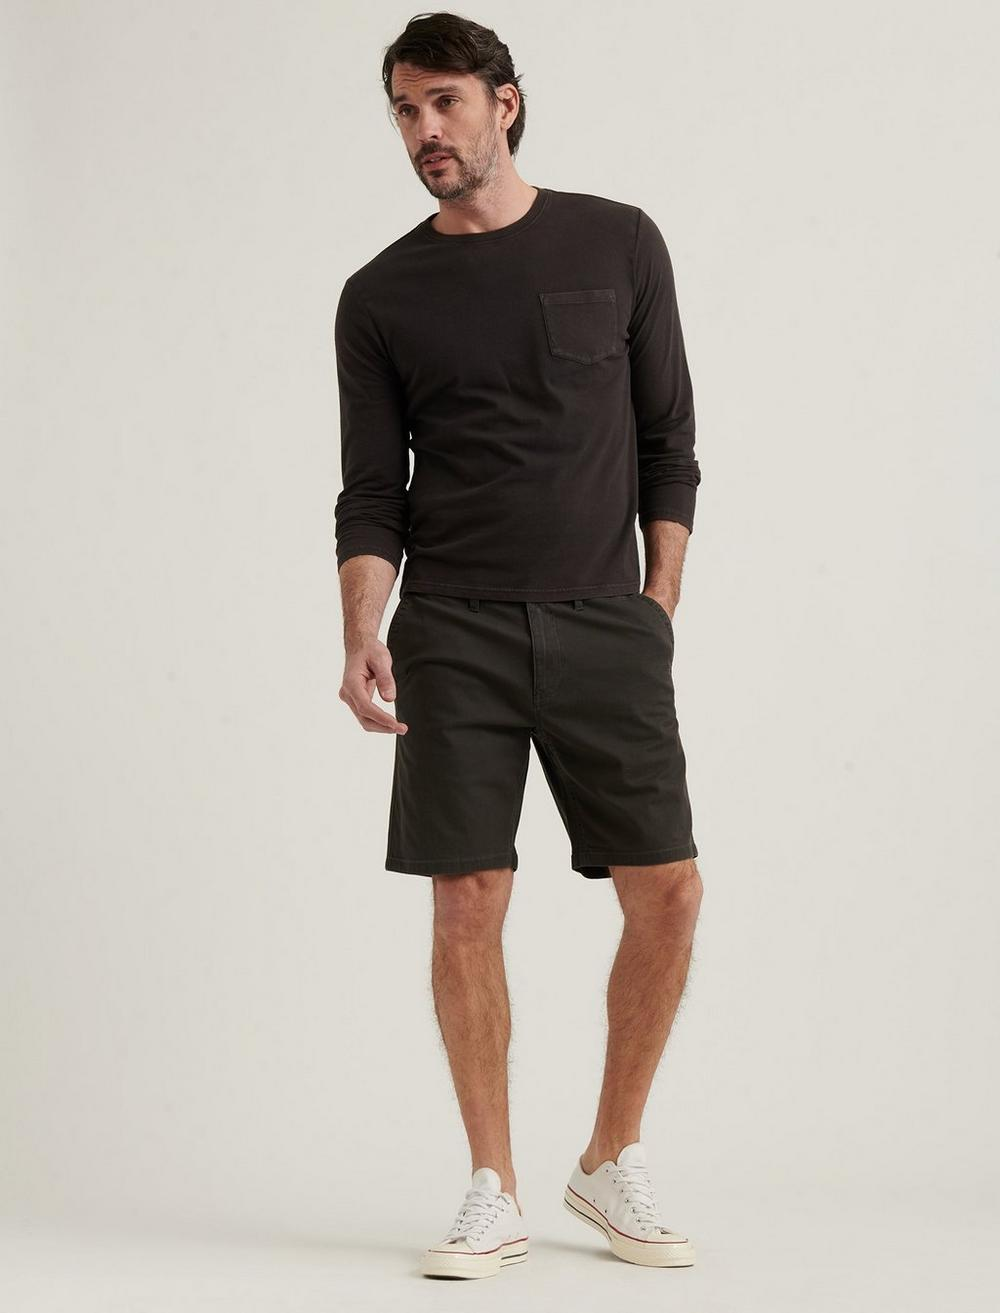 STRETCH TWILL FLAT FRONT SHORT, image 1